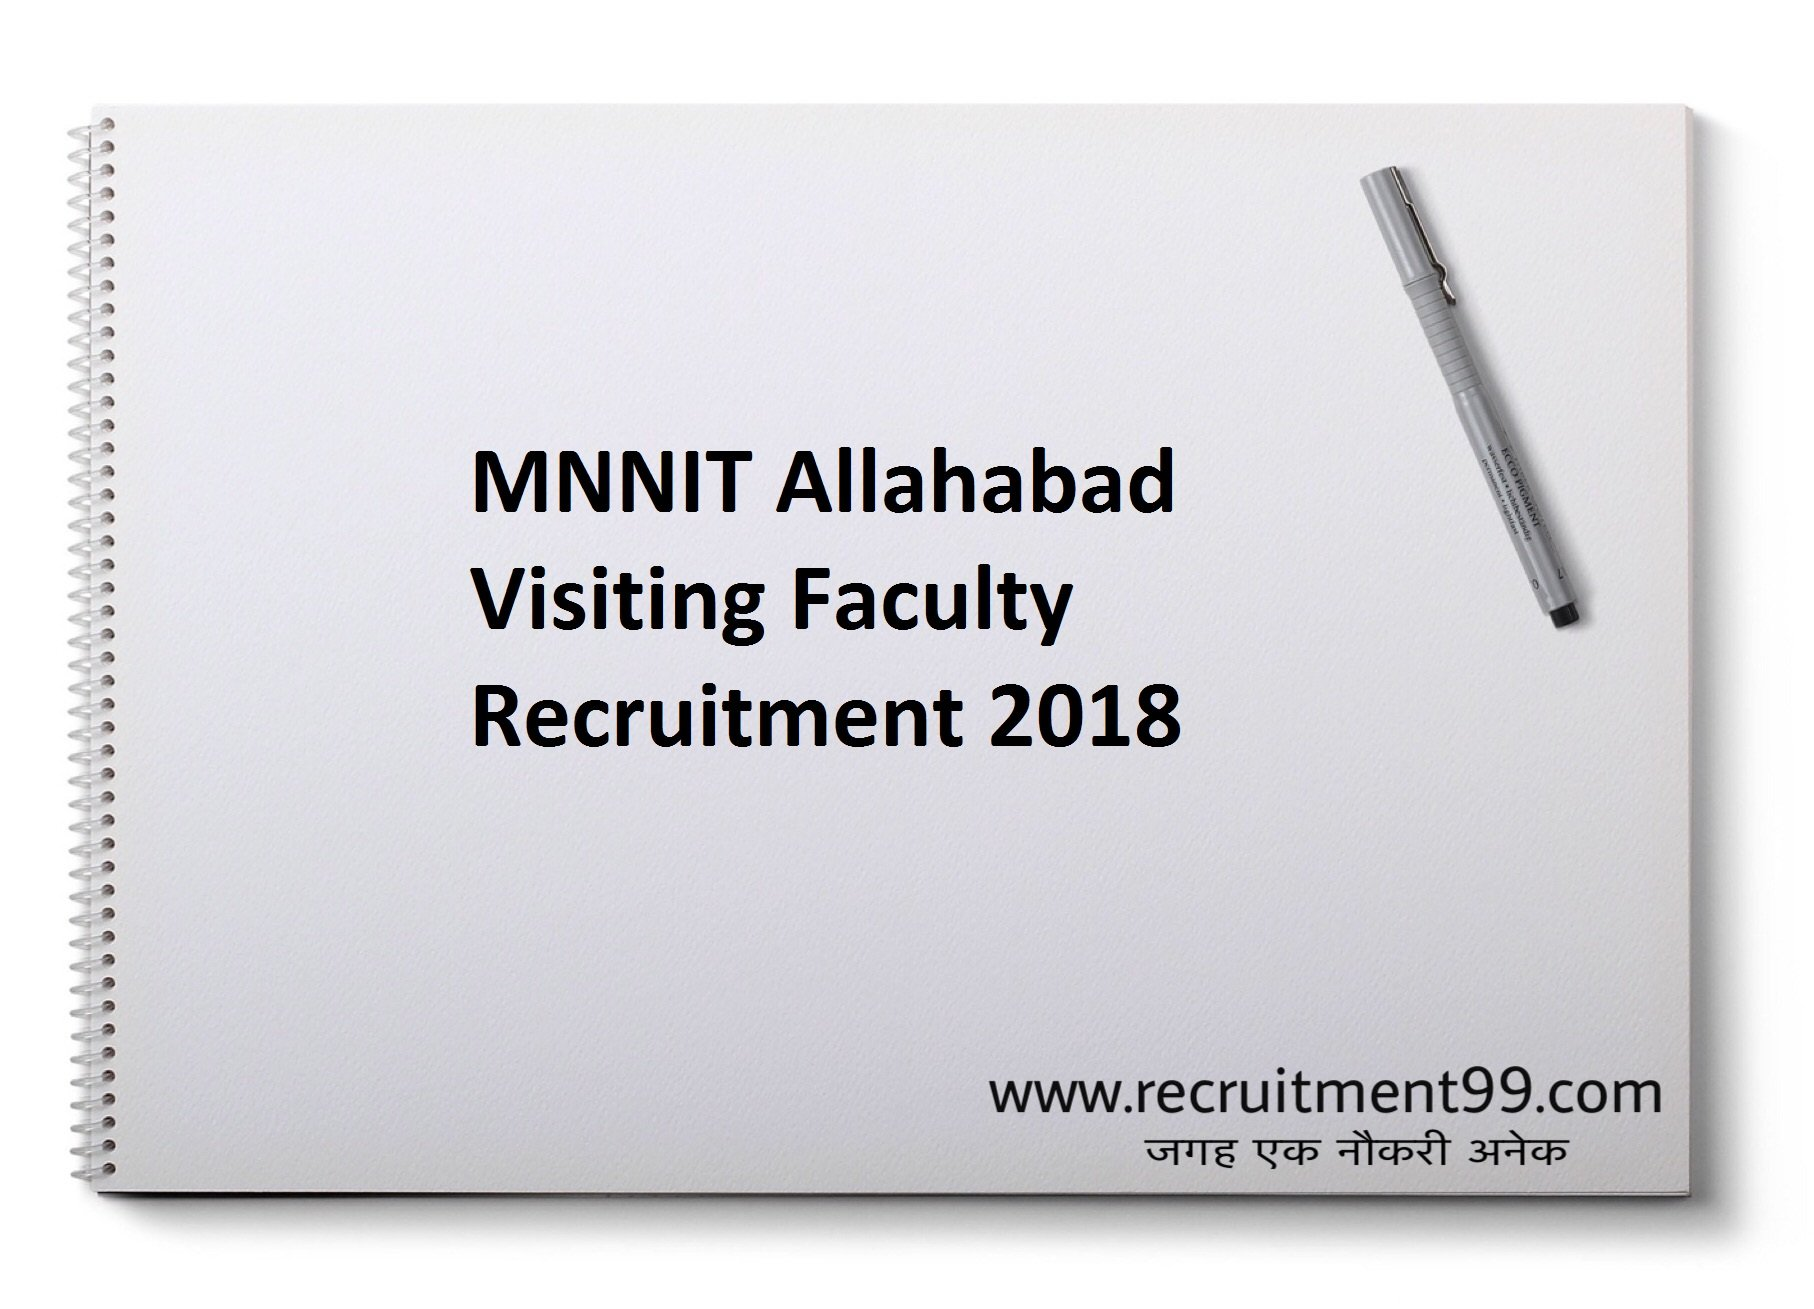 MNNIT Allahabad Visiting Faculty Recruitment Admit Card Result 2018